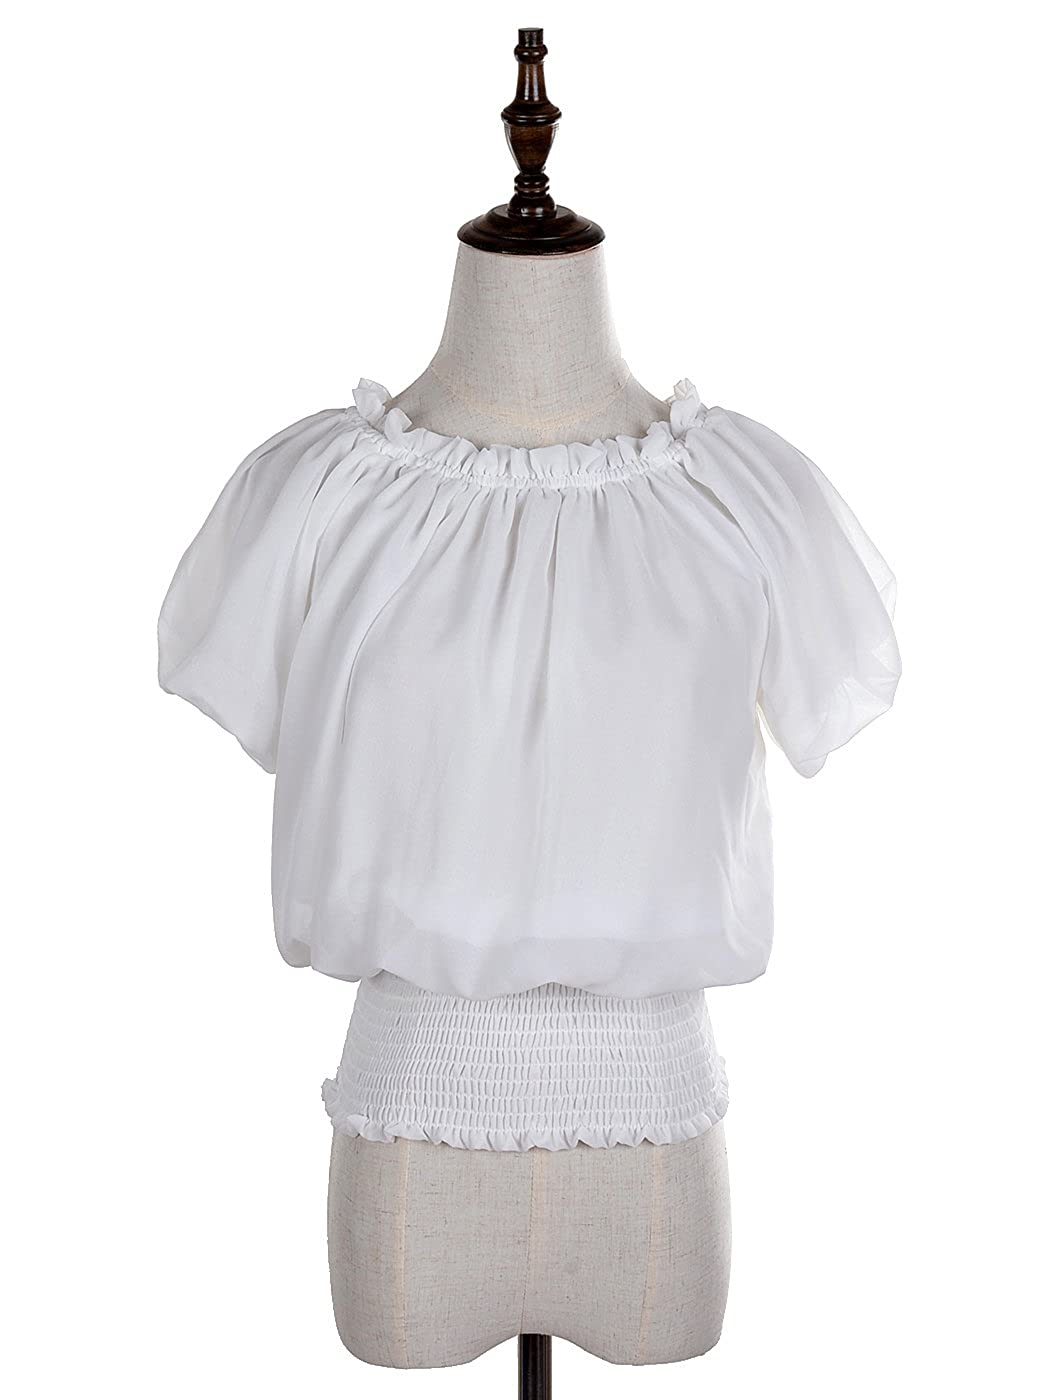 1940s Blouses, Shirts and Tops Fashion History Anna-Kaci Womens Short Sleeve Ruffle Off Shoulder Smocked Waist Boho Blouse Tops $27.99 AT vintagedancer.com